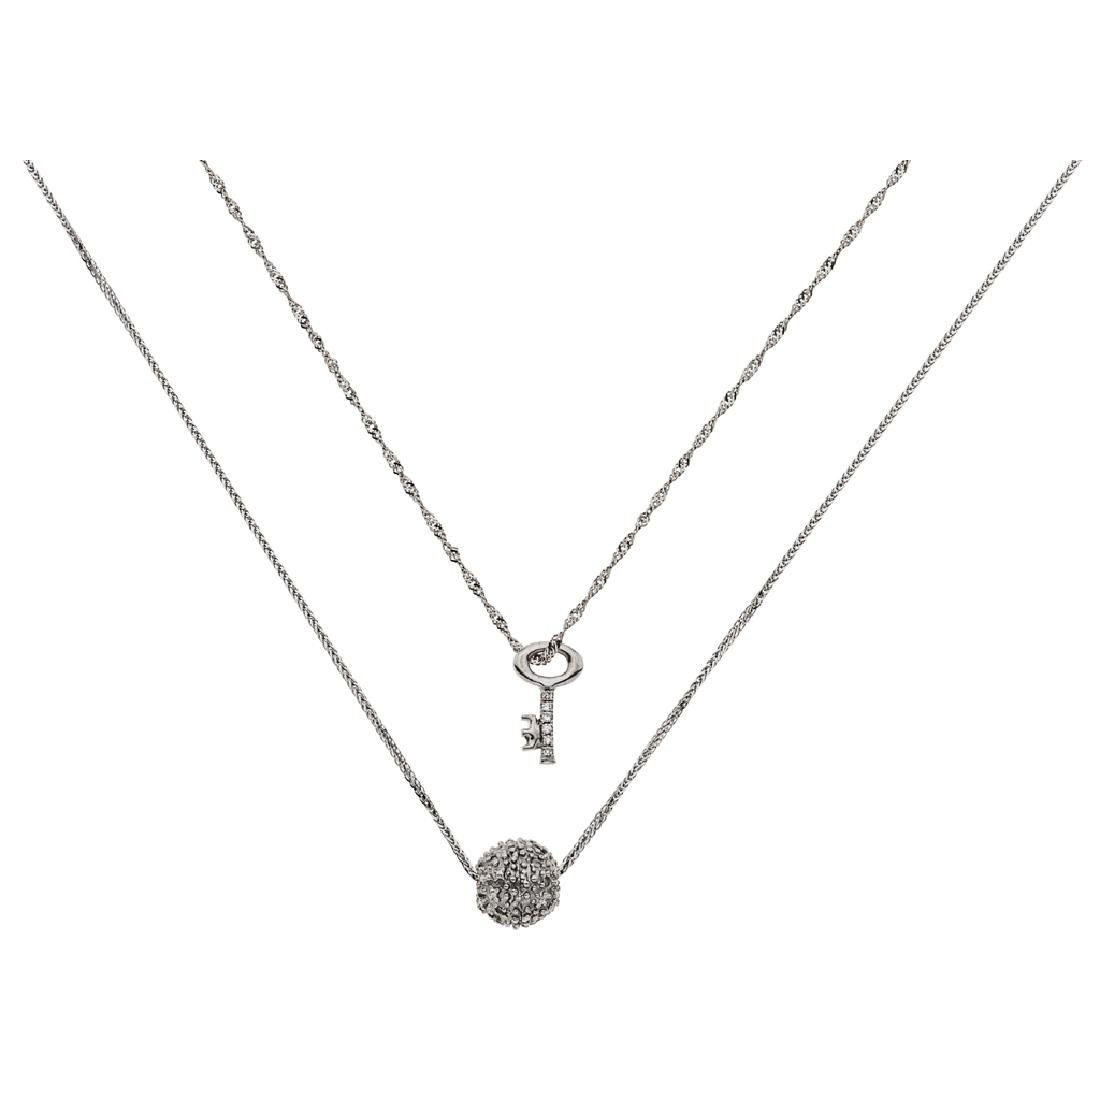 Two 14K white gold chokers and pendants with 18 diamond